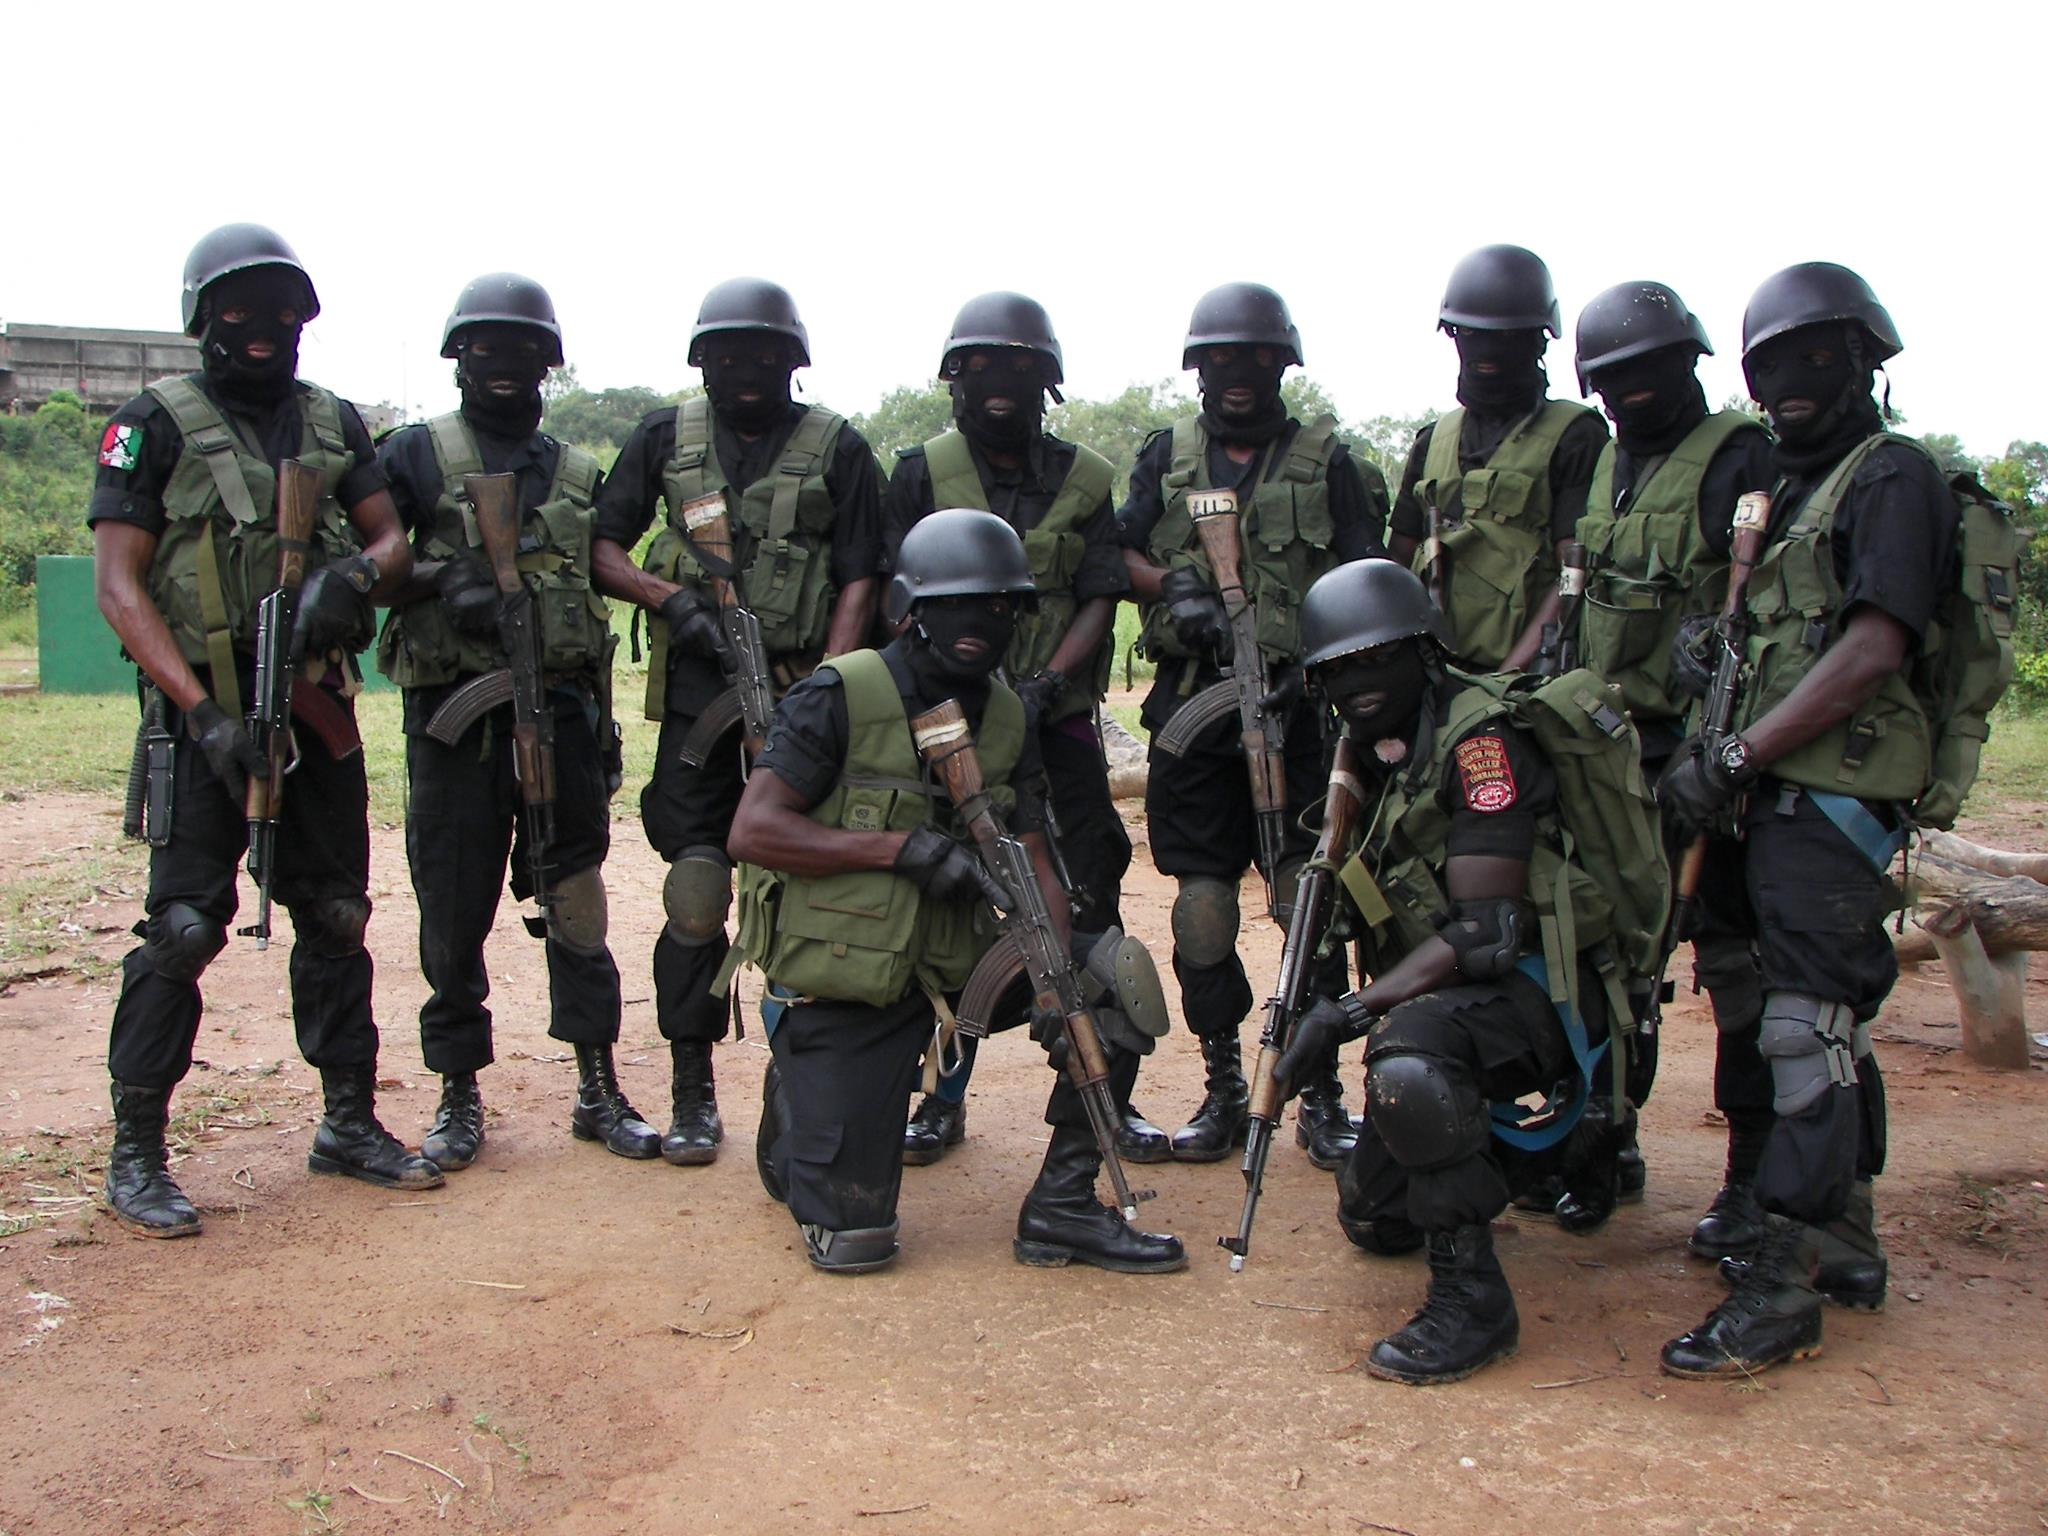 WORLD EXCLUSIVE PHOTO SERIES: NIGERIAN ARMY SPECIAL FORCES(INSPIRED BY HENRY,...